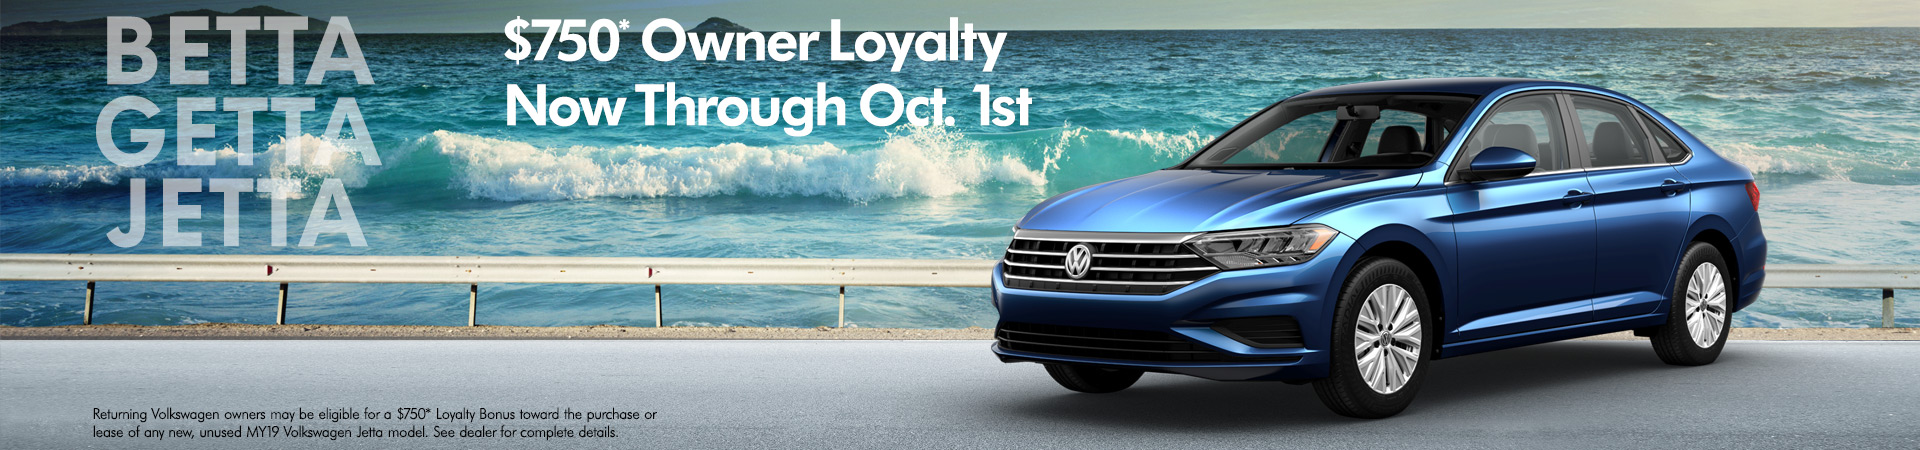 Betta Getta Jetta - $750 Owner Loyalty Now through Oct. 1st